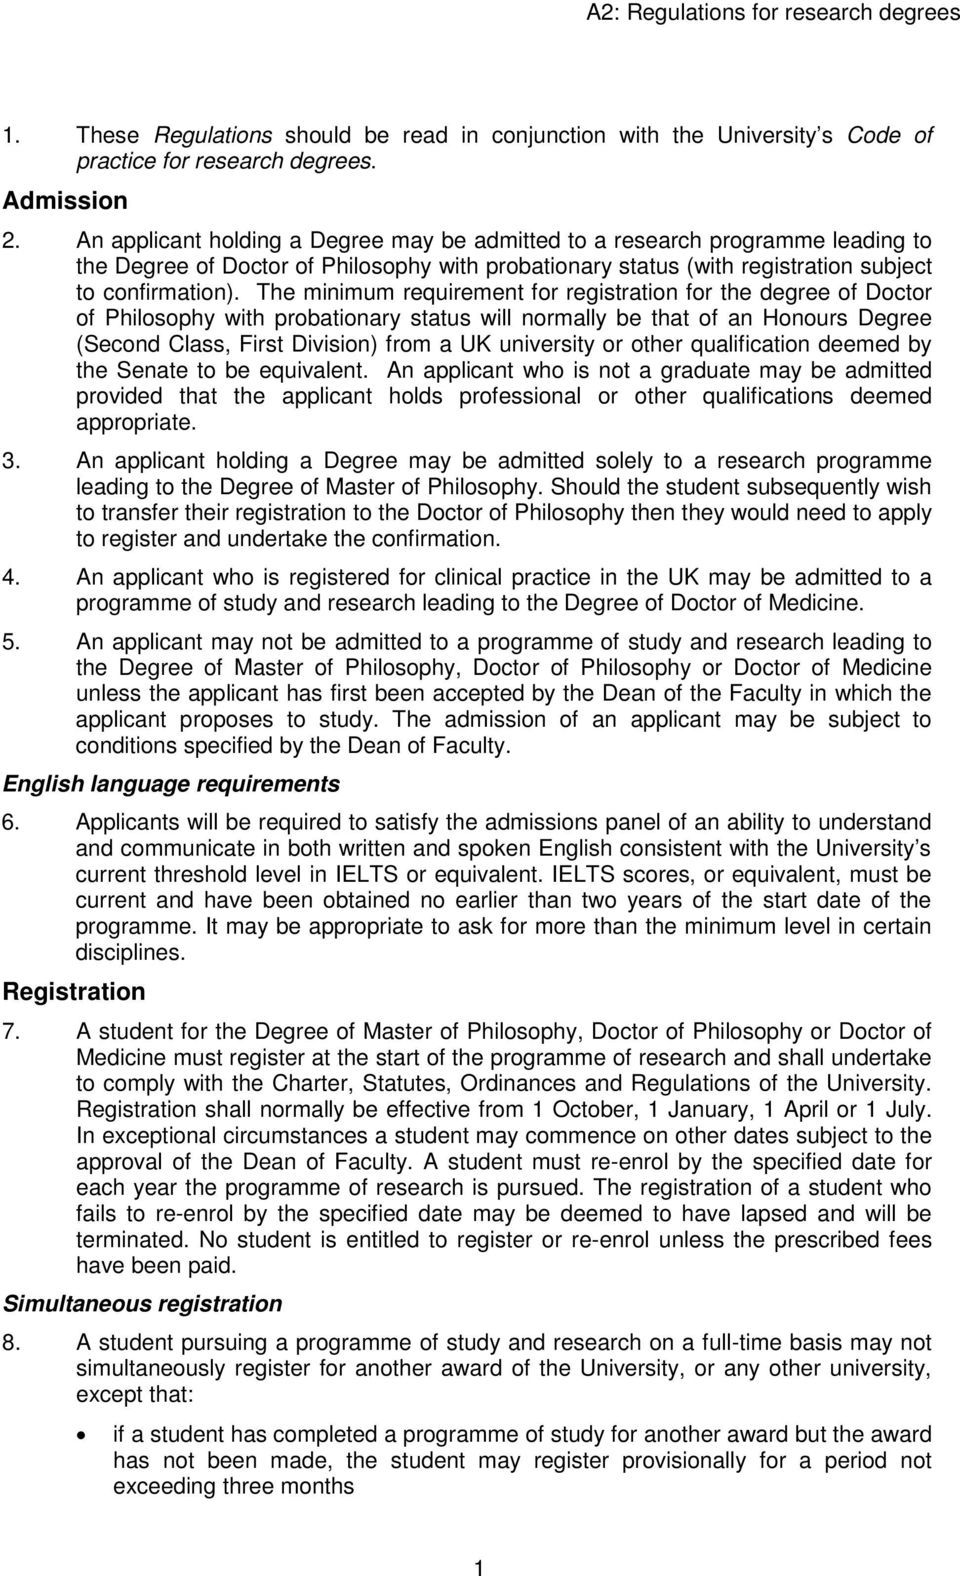 The minimum requirement for registration for the degree of Doctor of Philosophy with probationary status will normally be that of an Honours Degree (Second Class, First Division) from a UK university